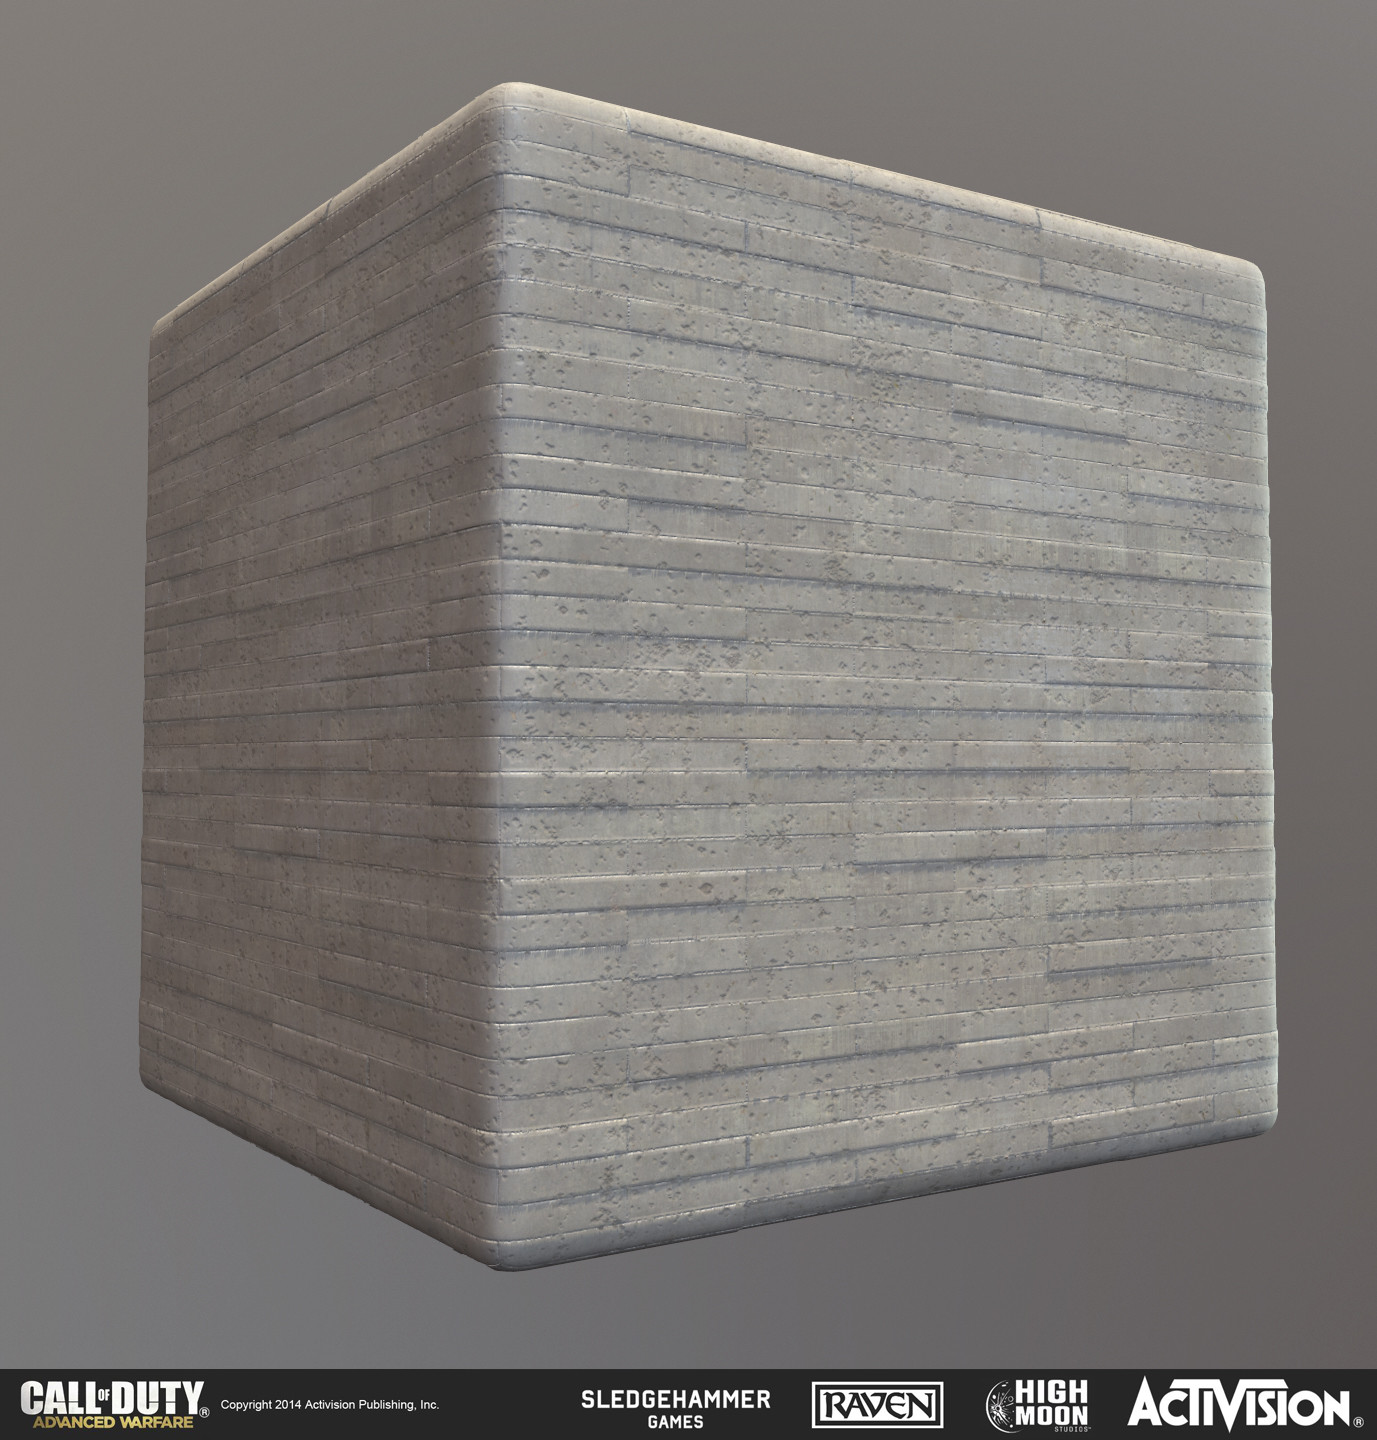 Tiling extruded concrete wall